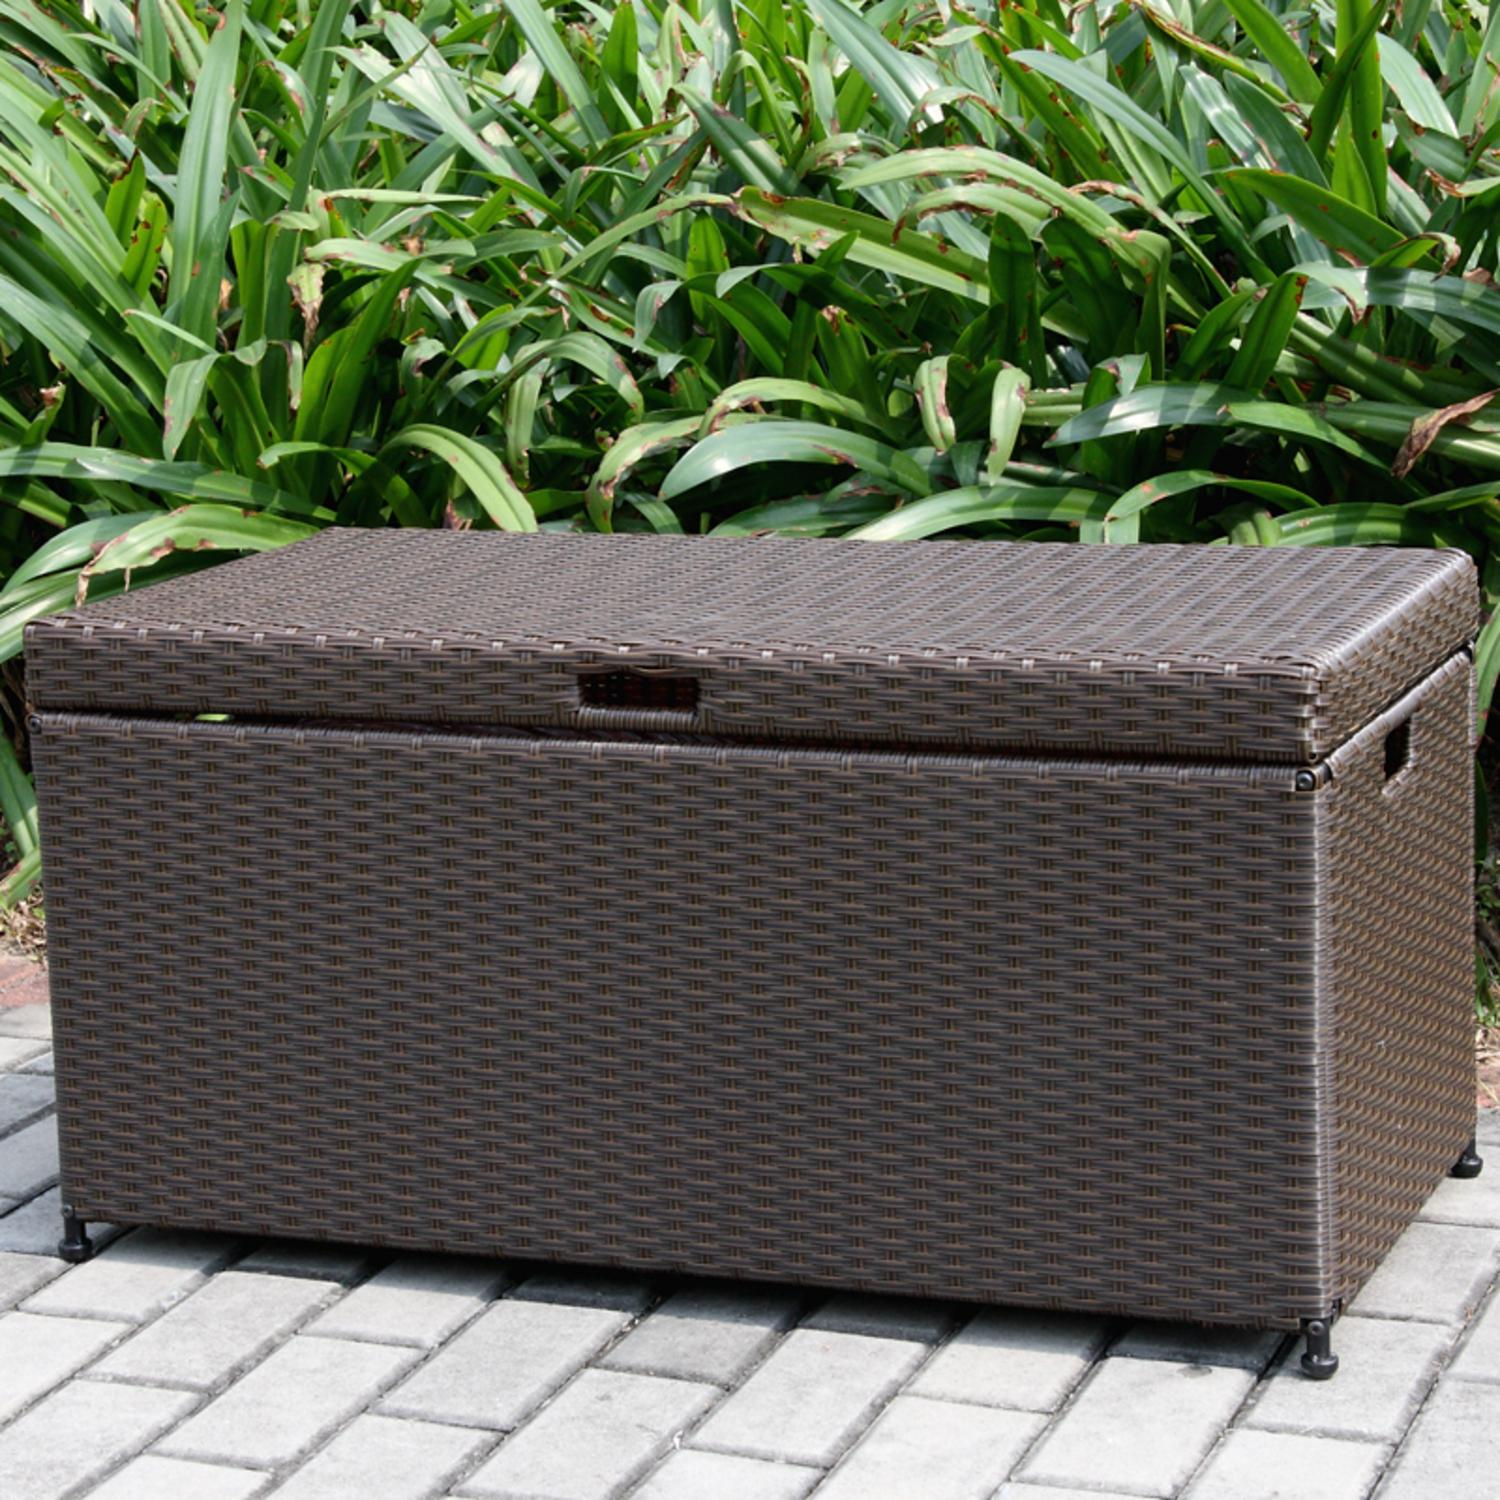 "40"" Espresso Brown Resin Wicker Outdoor Patio Garden Hinged Lidded Storage Deck Box by CC Outdoor Living"